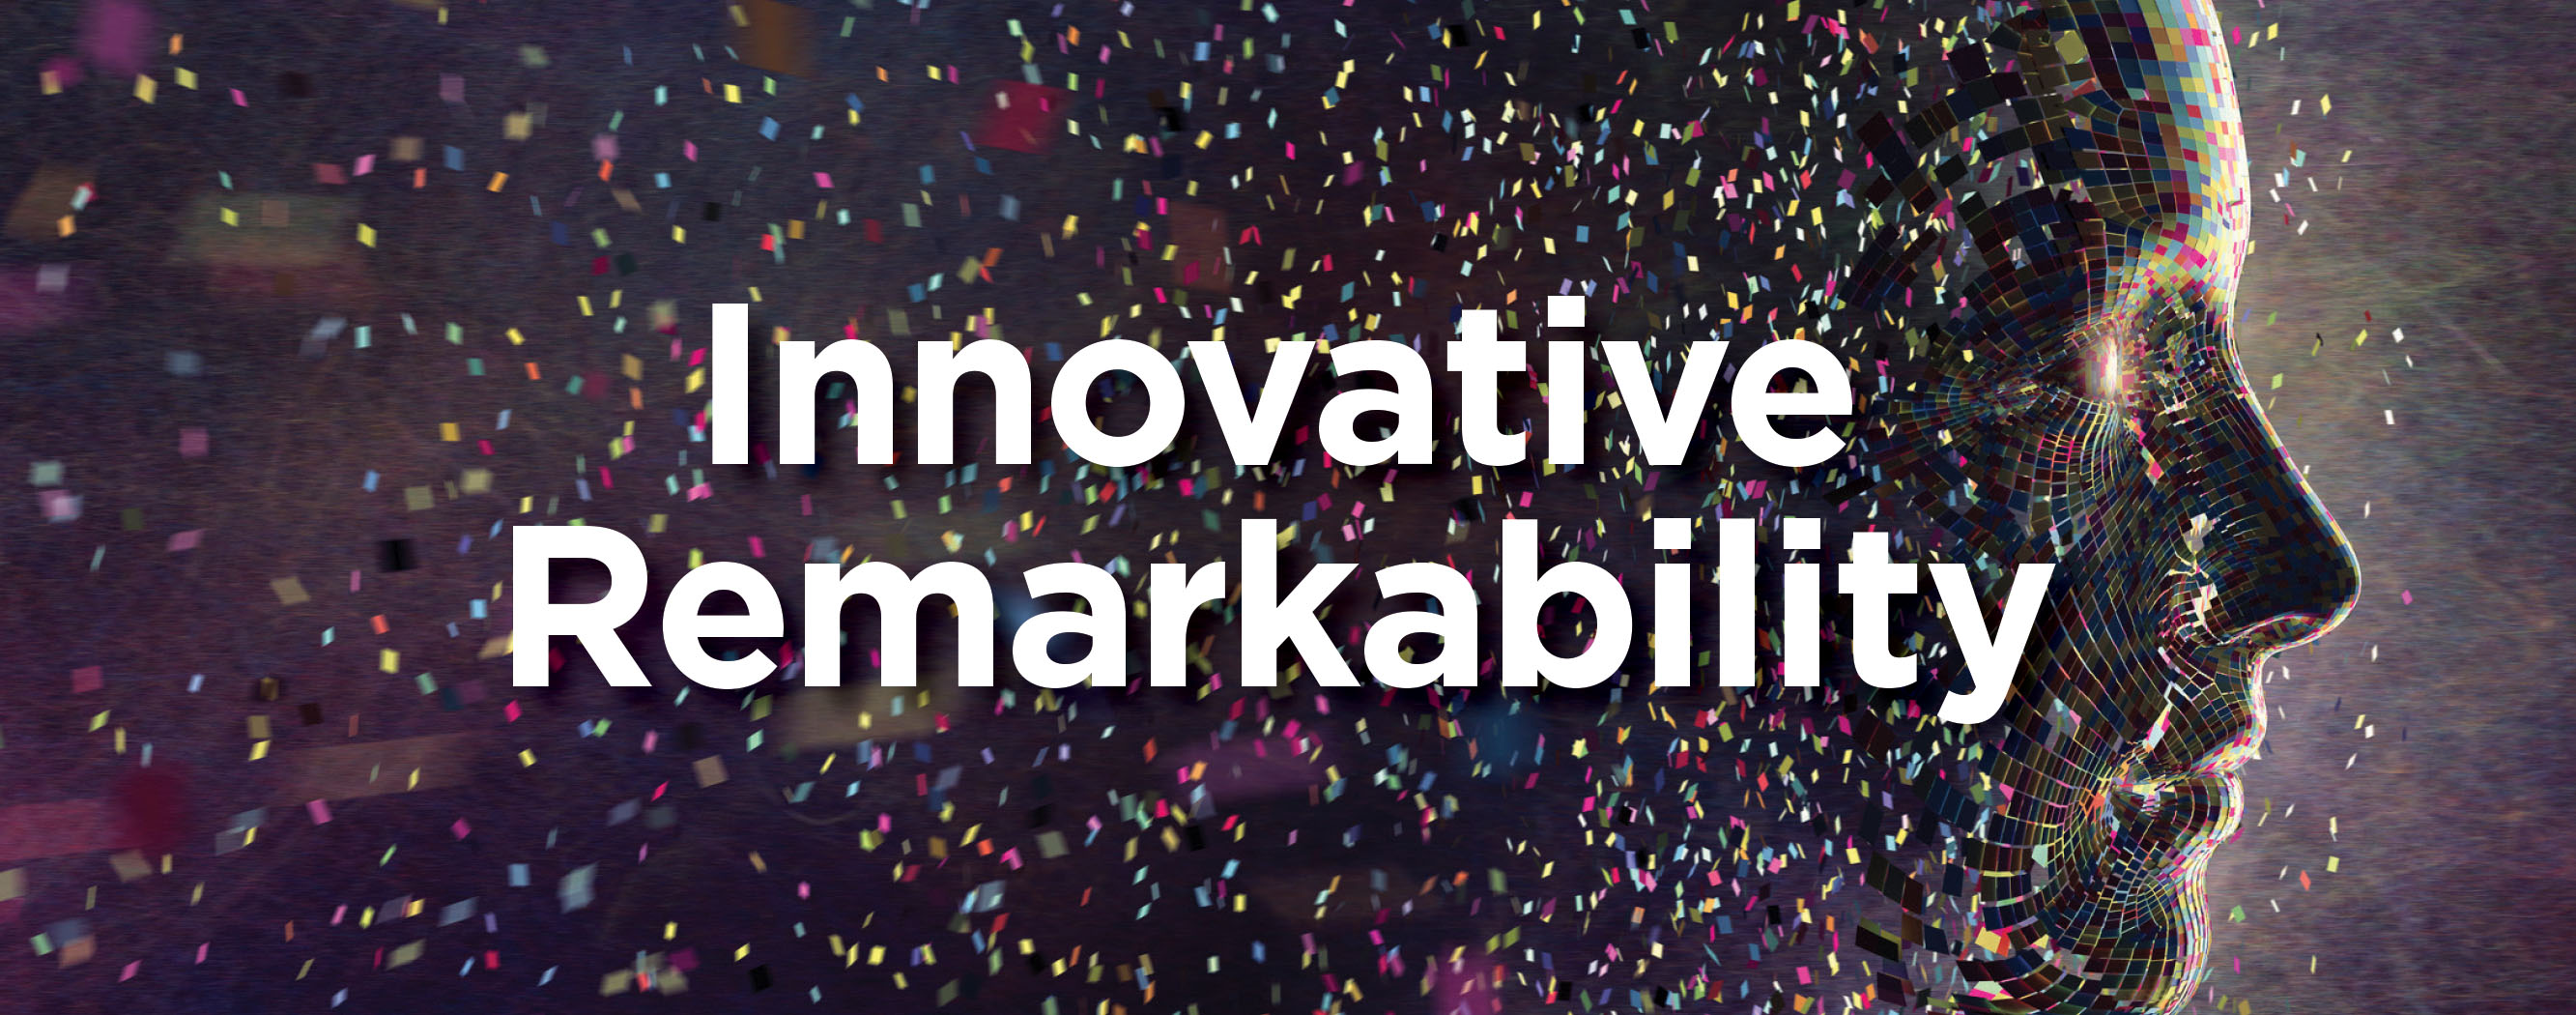 You are currently viewing Innovative Remarkability